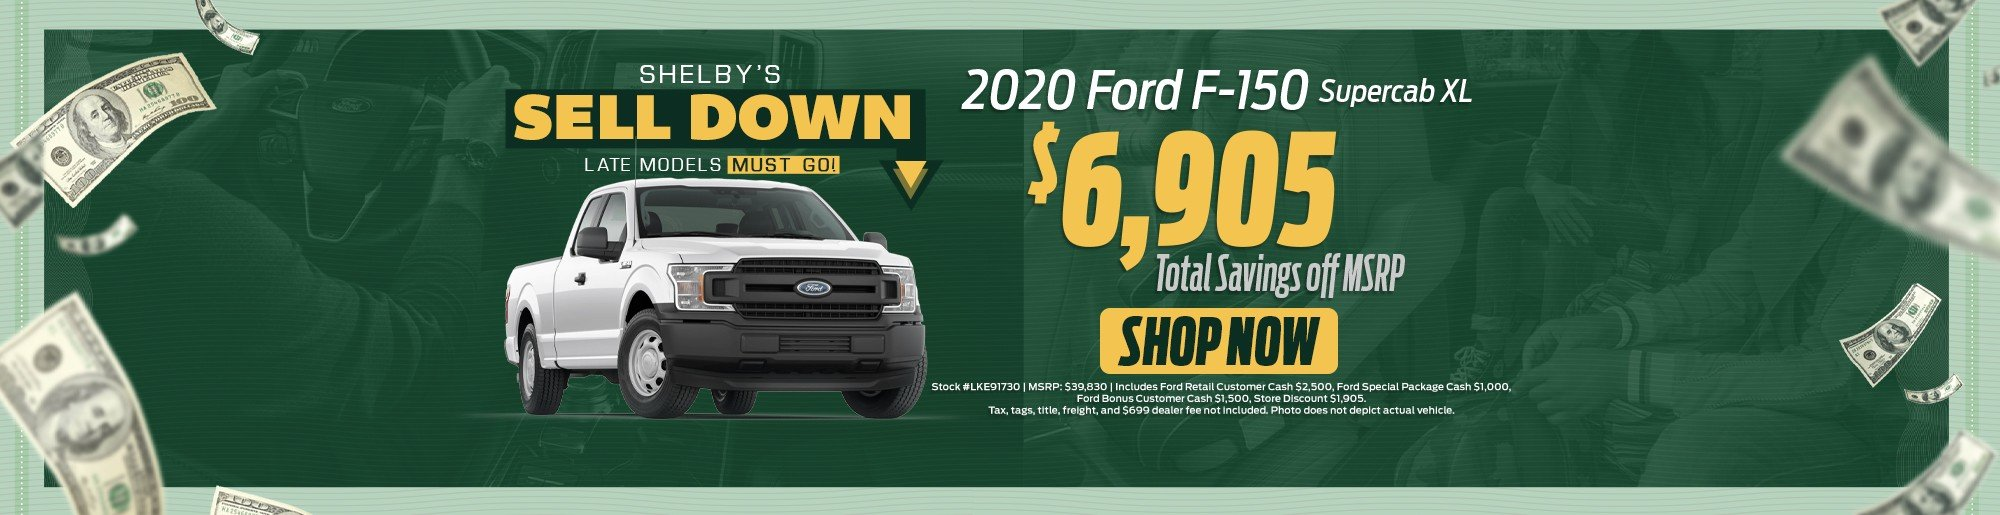 Ford F-150 offers near me, Key Scaled Ford FL